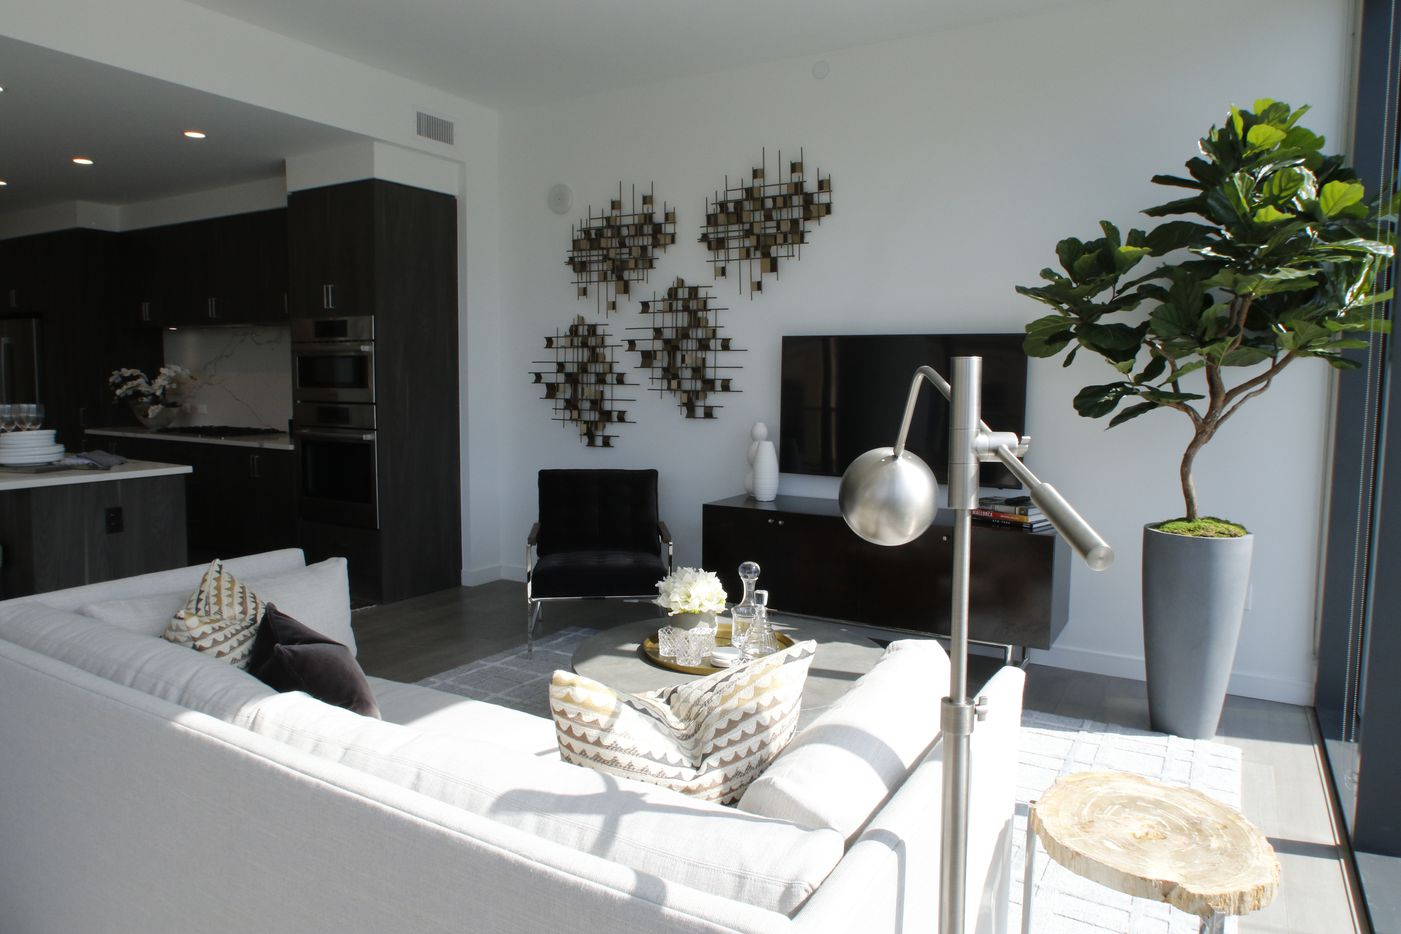 A model apartment in the new Residences at Park District high-rise overlooking Klyde Warren Park.